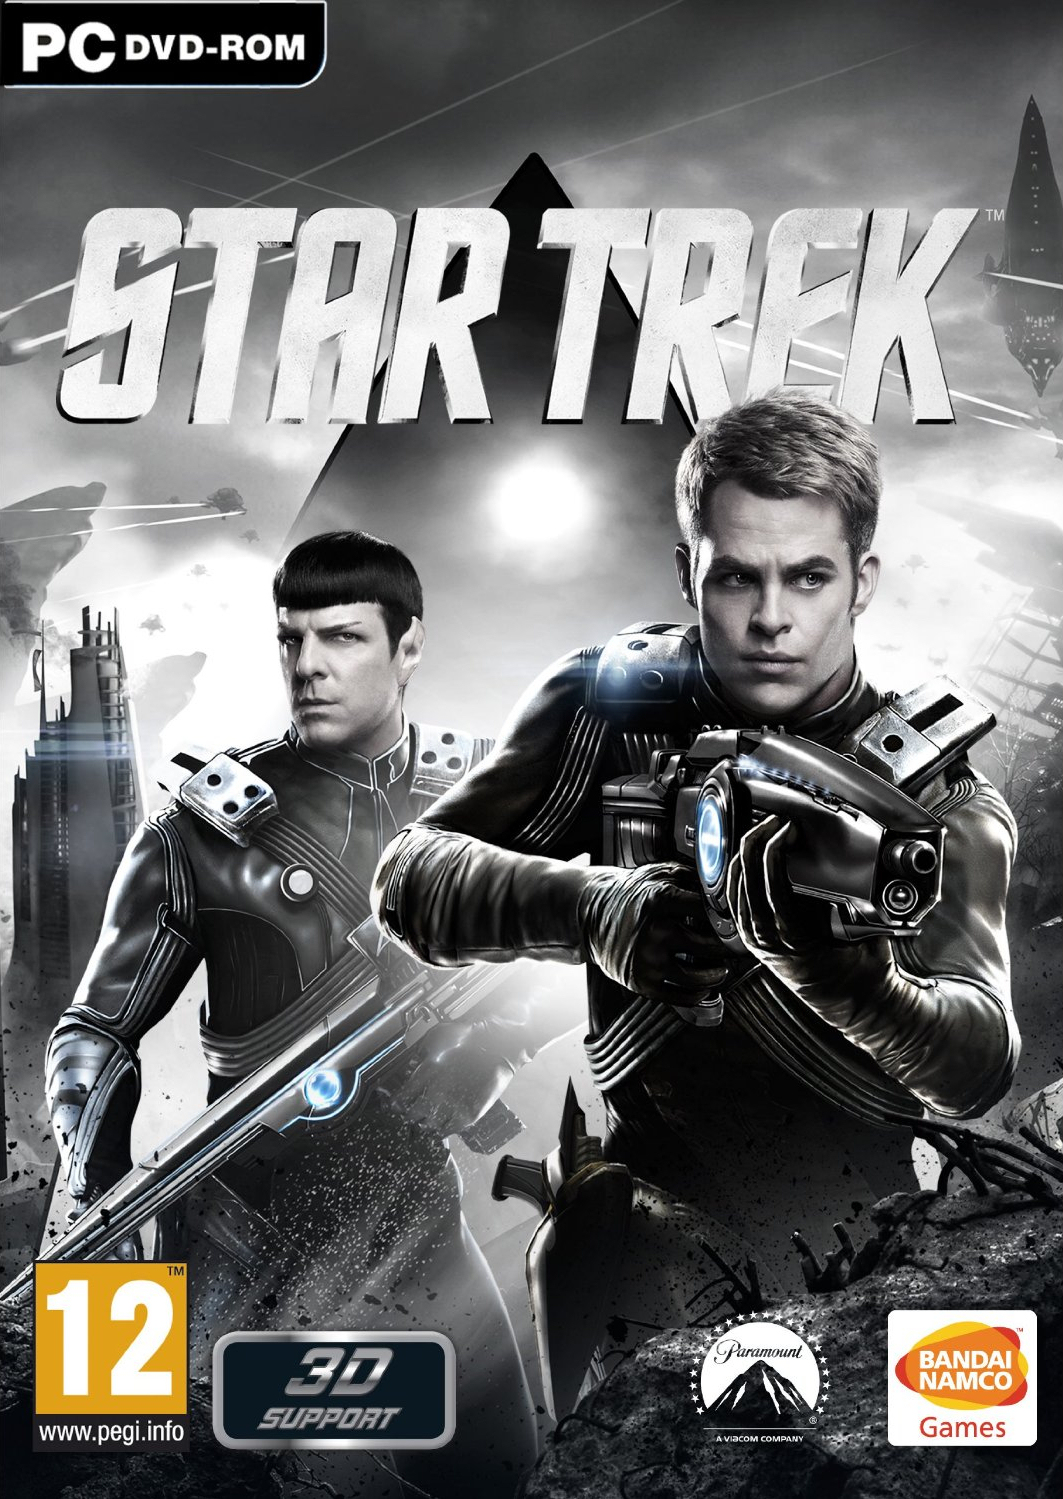 Star Trek video game PC